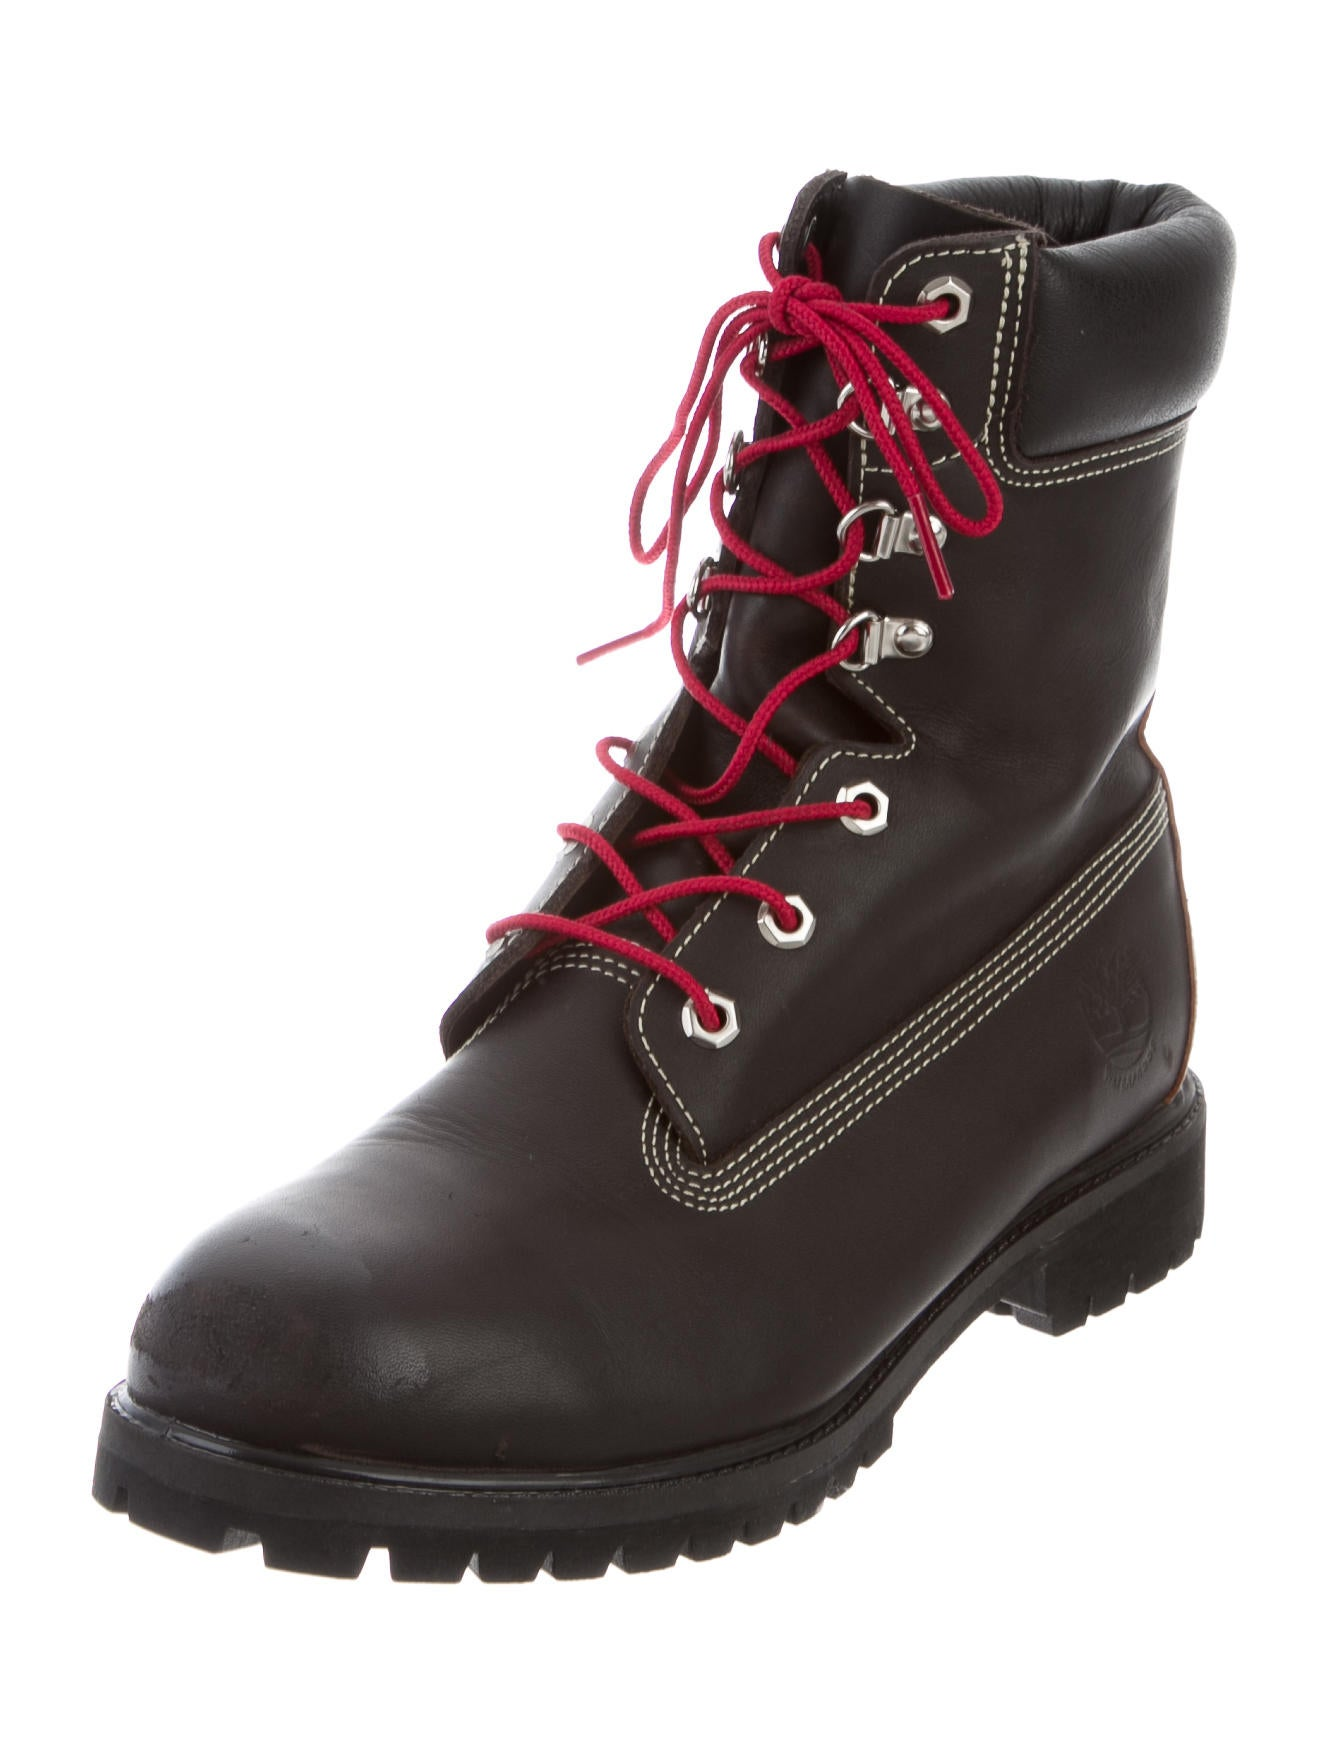 timberland two tone leather boots shoes wtimb20001